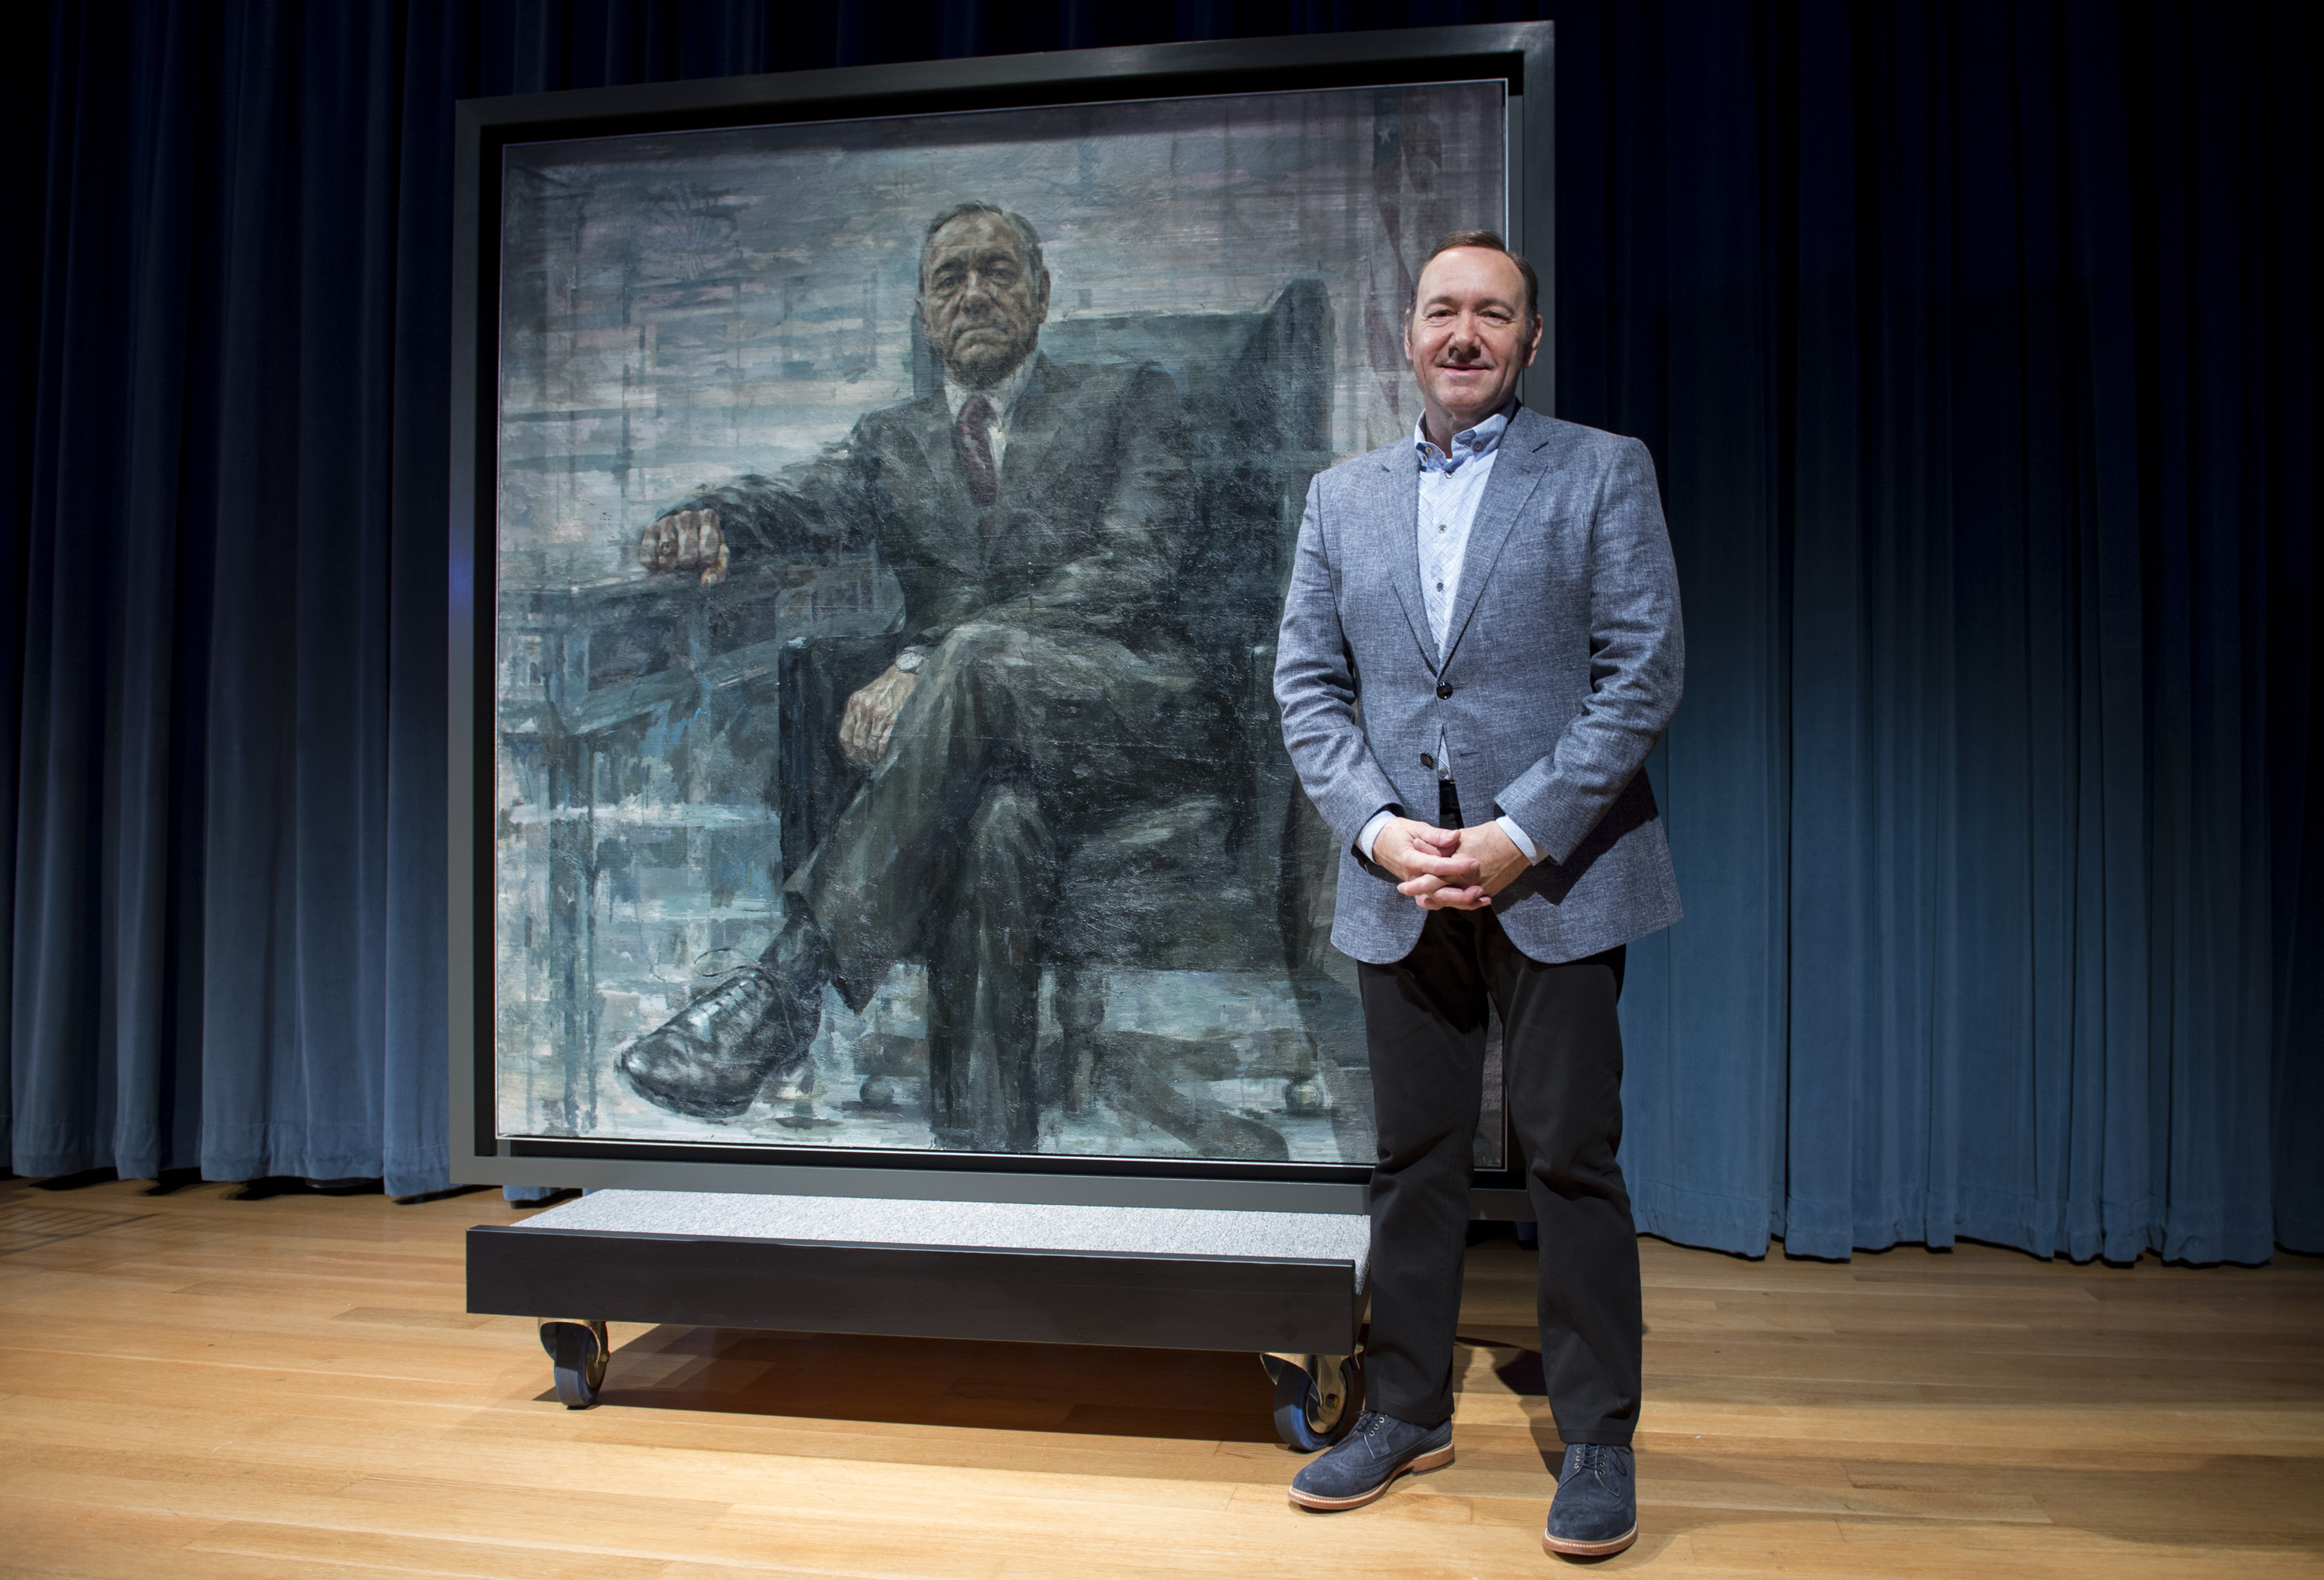 Forrest Gump Quotes Wallpaper National Portrait Gallery Unveils Frank Underwood Painting